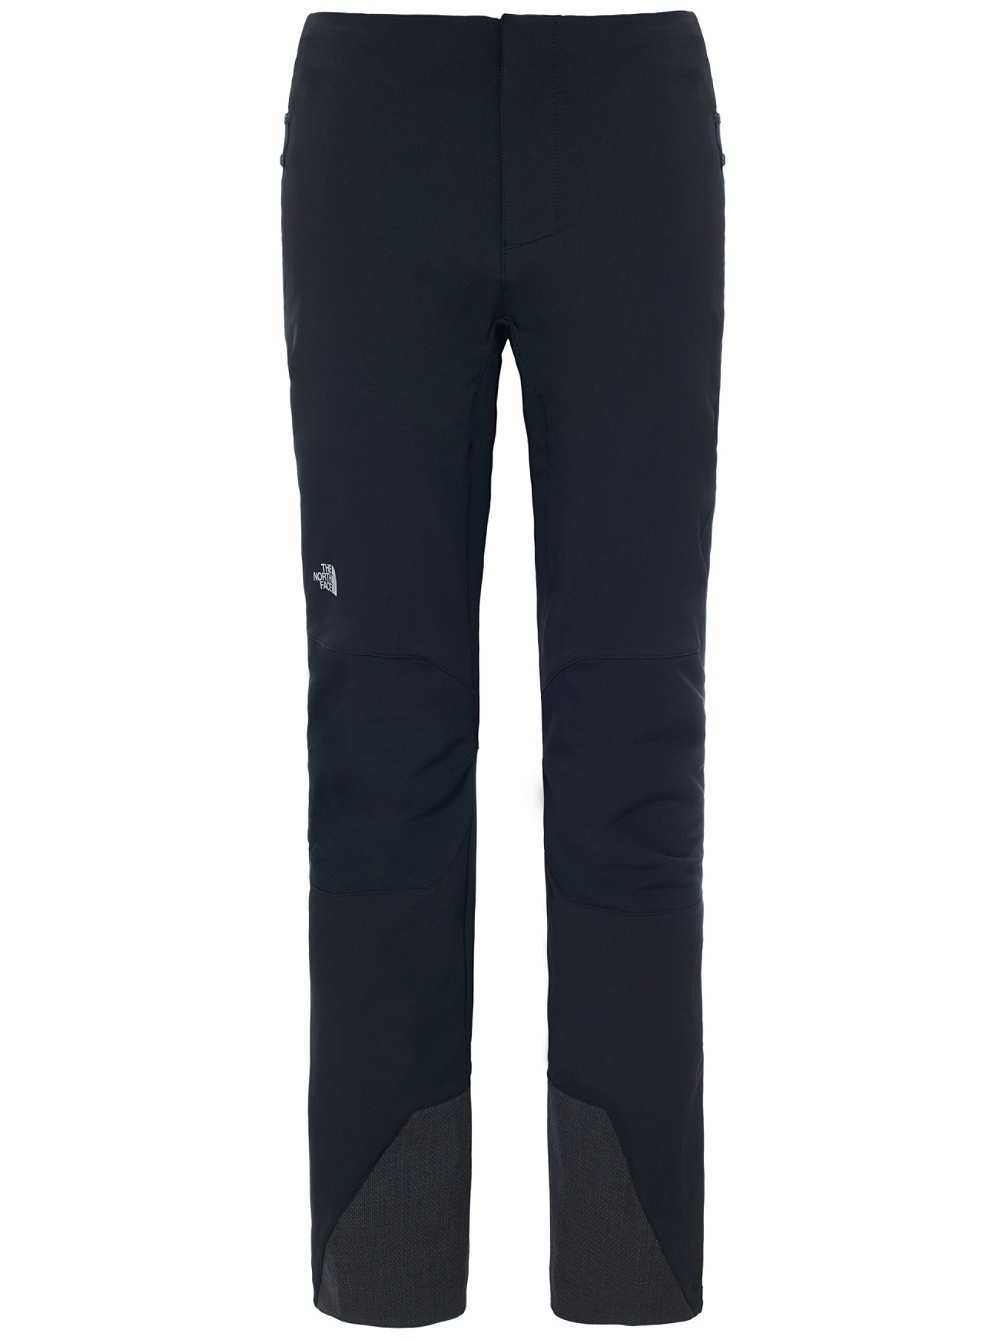 North Face W Orion Pantalone, Nero/Tnf Black, 2/REG